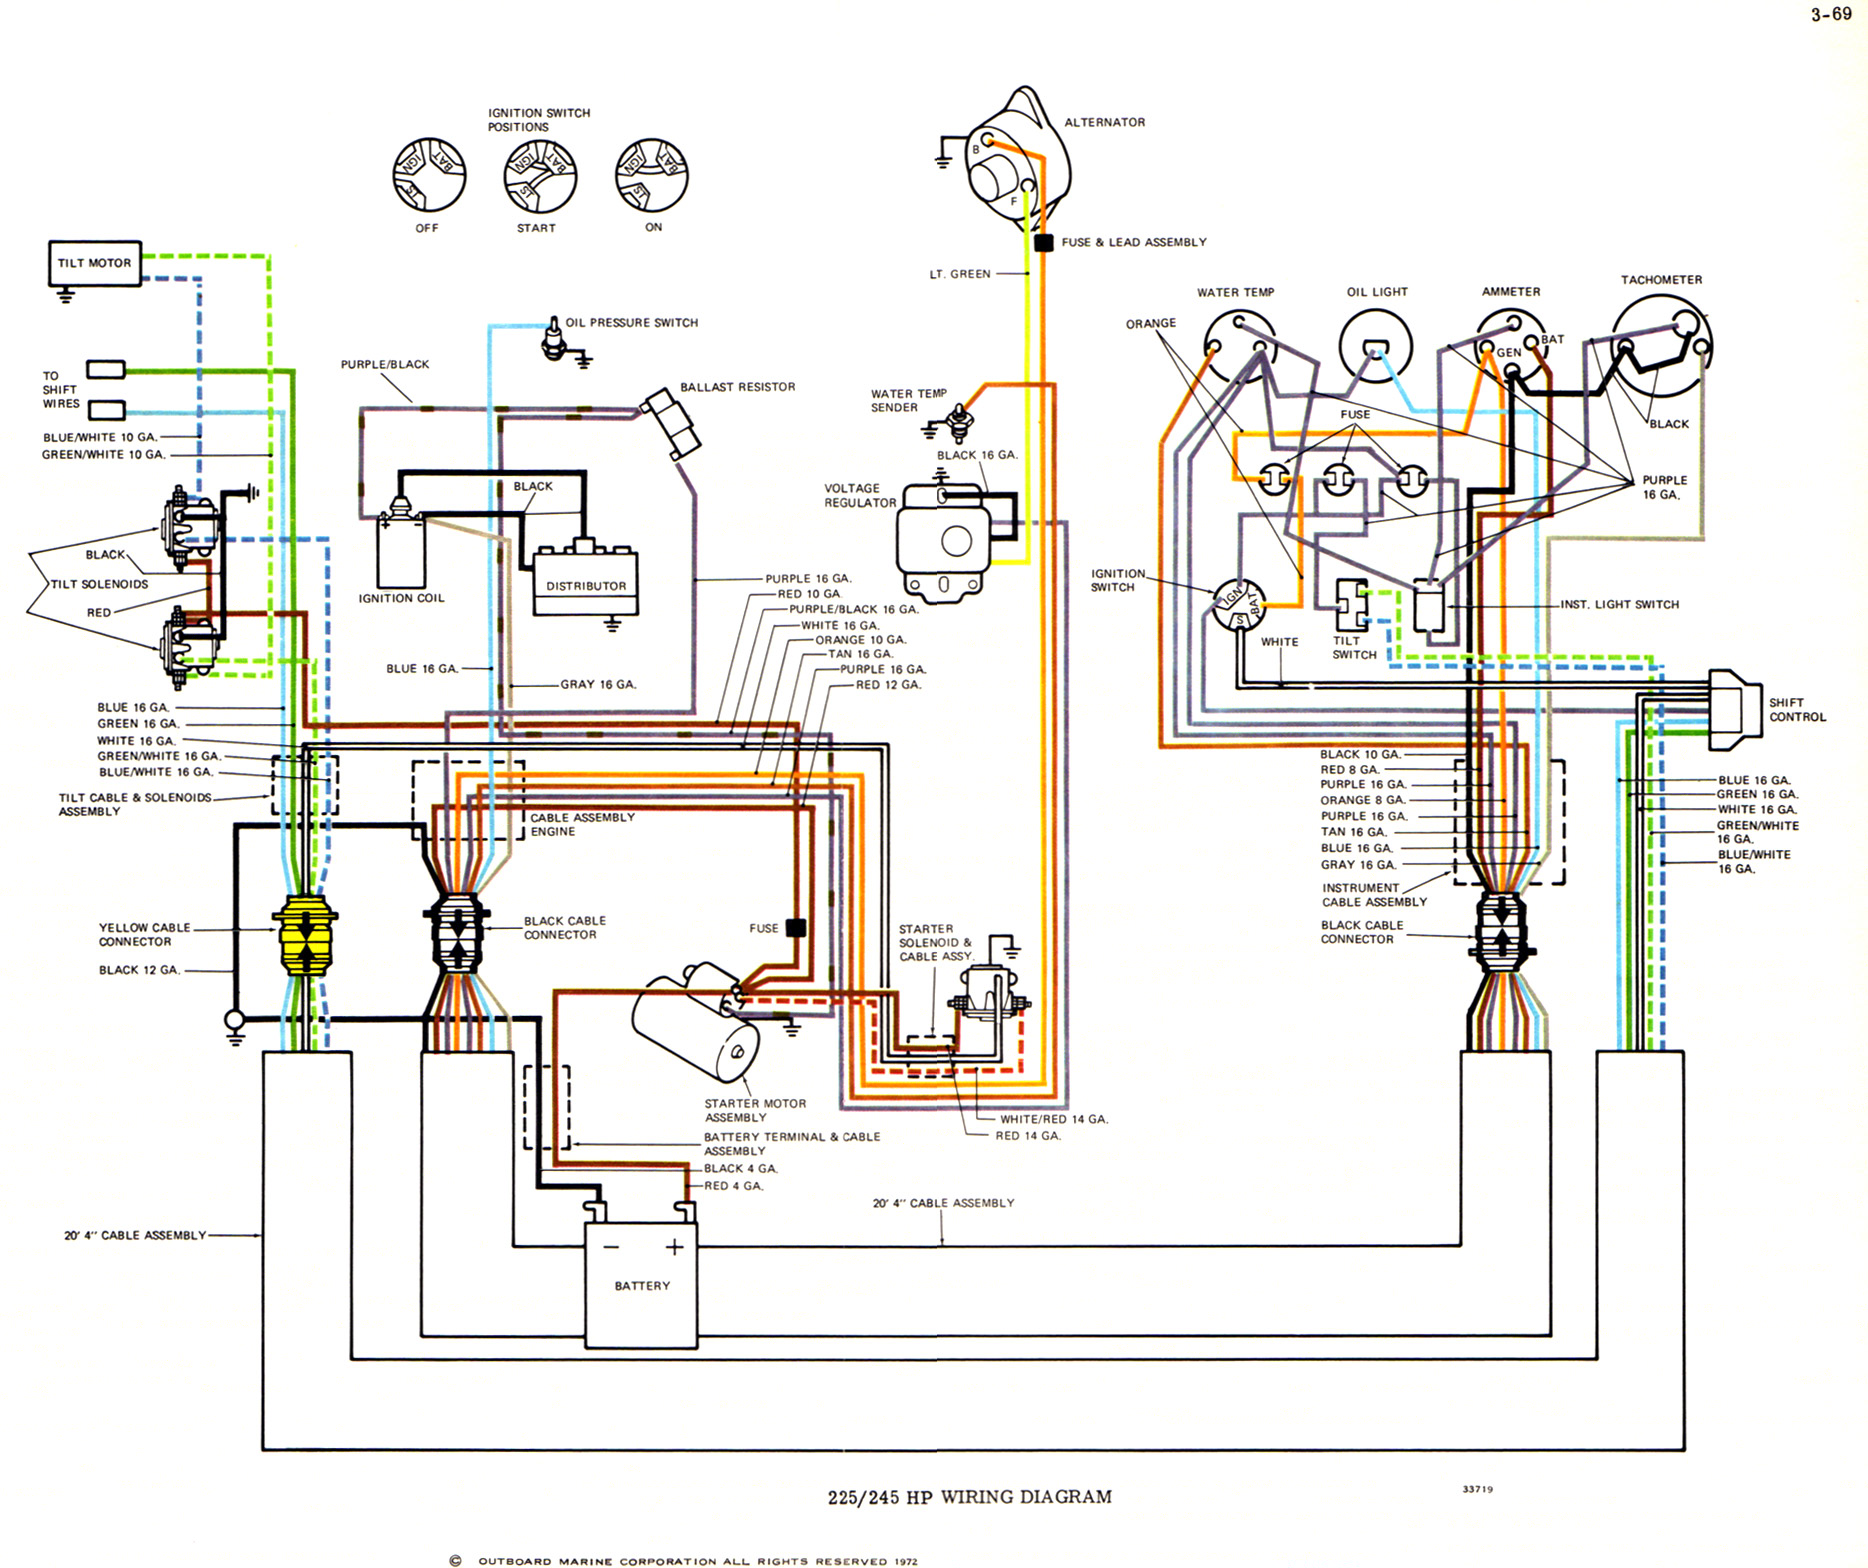 omc 120hp electric shift wiring??? page: 1 - iboats ... omc co wiring diagram #7